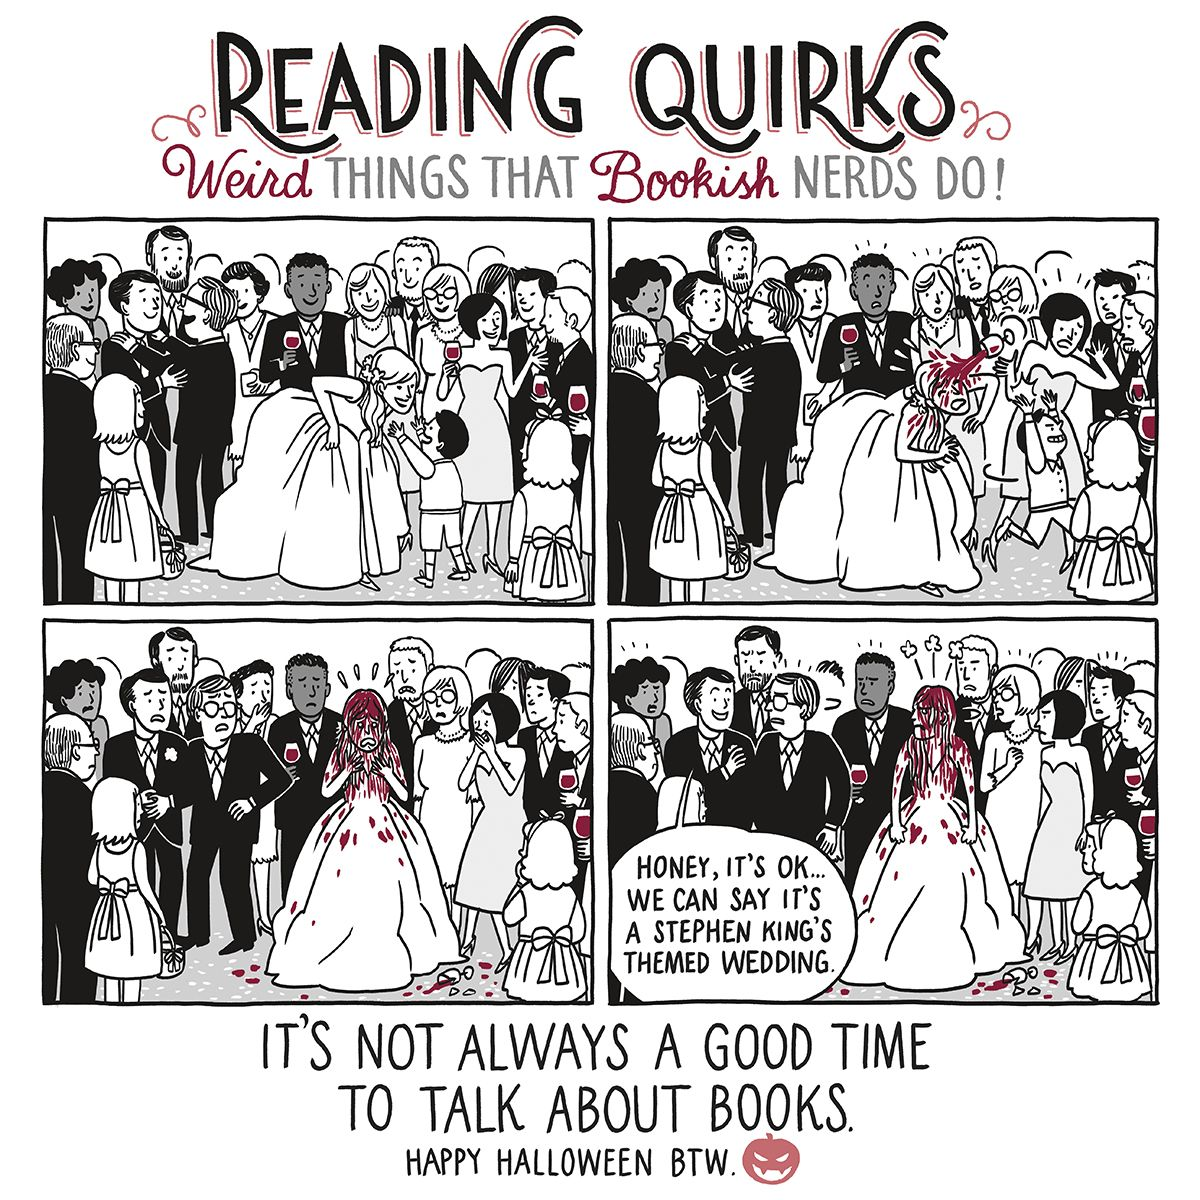 This is a comic series about all those weird things we readers do ...